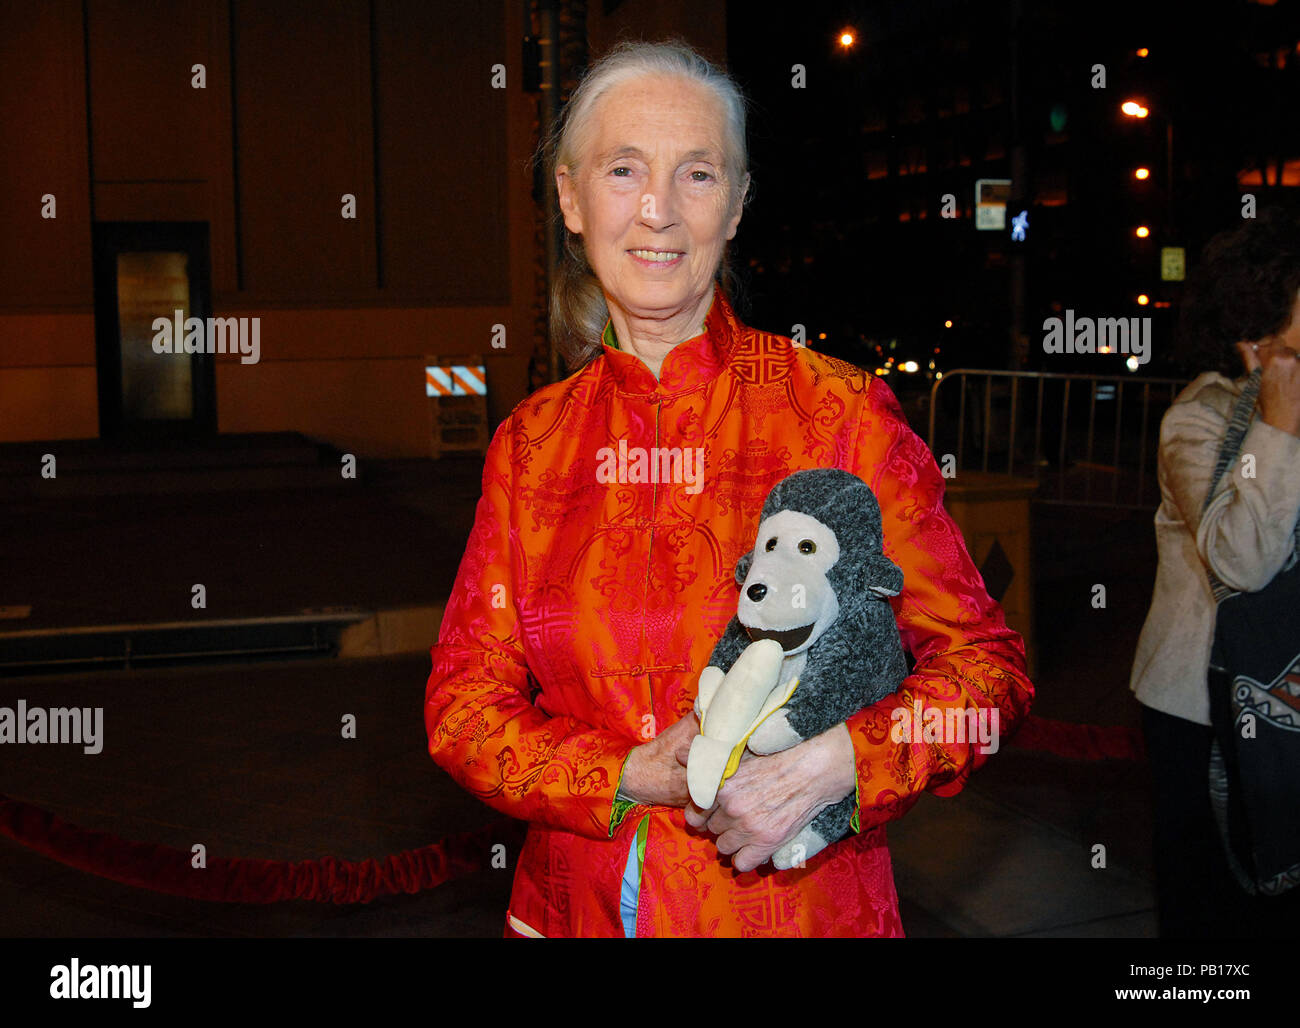 Jane Goodall Arriving At The Jules Verne Adventure Film Festival Expositions At The Shrine Auditorium In Los Angeles 1 2 Smile Eye Contact Orange Dress Monkey Horizontale12 Goodalljane12 Red Carpet Event Vertical